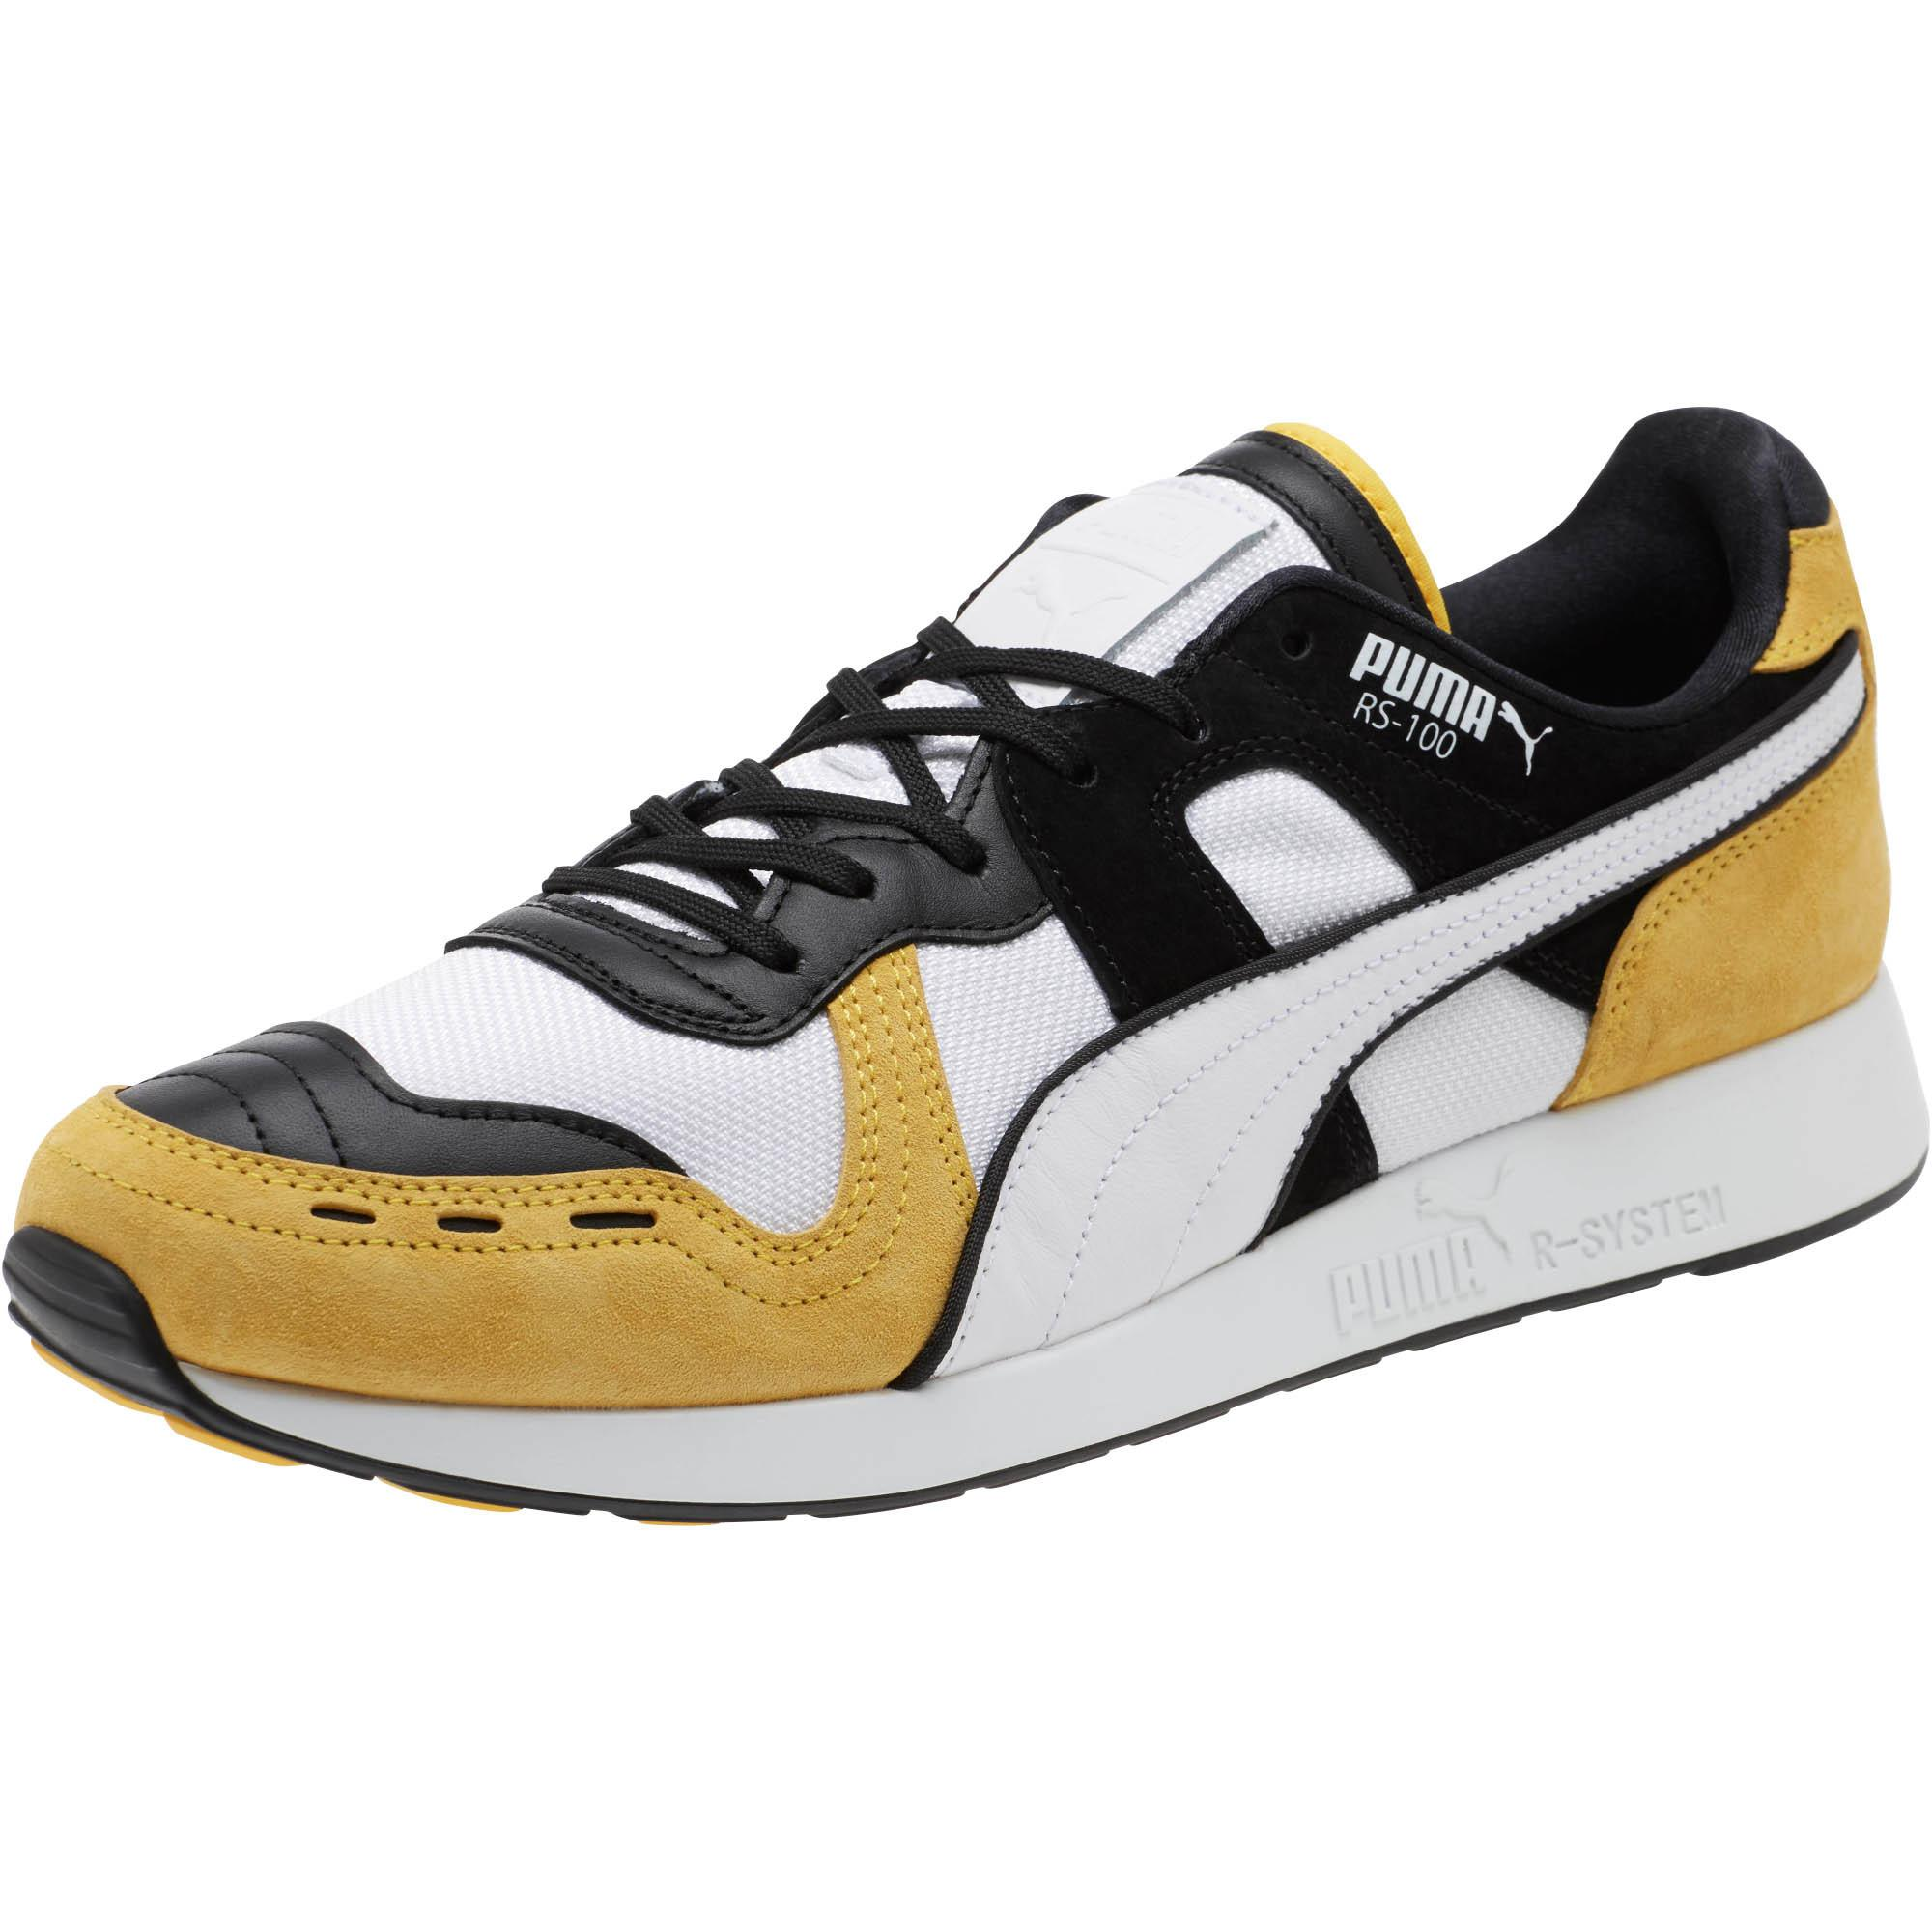 42b02d2a038 Lyst - PUMA Rs-100 Nubuck Sneakers in Black for Men